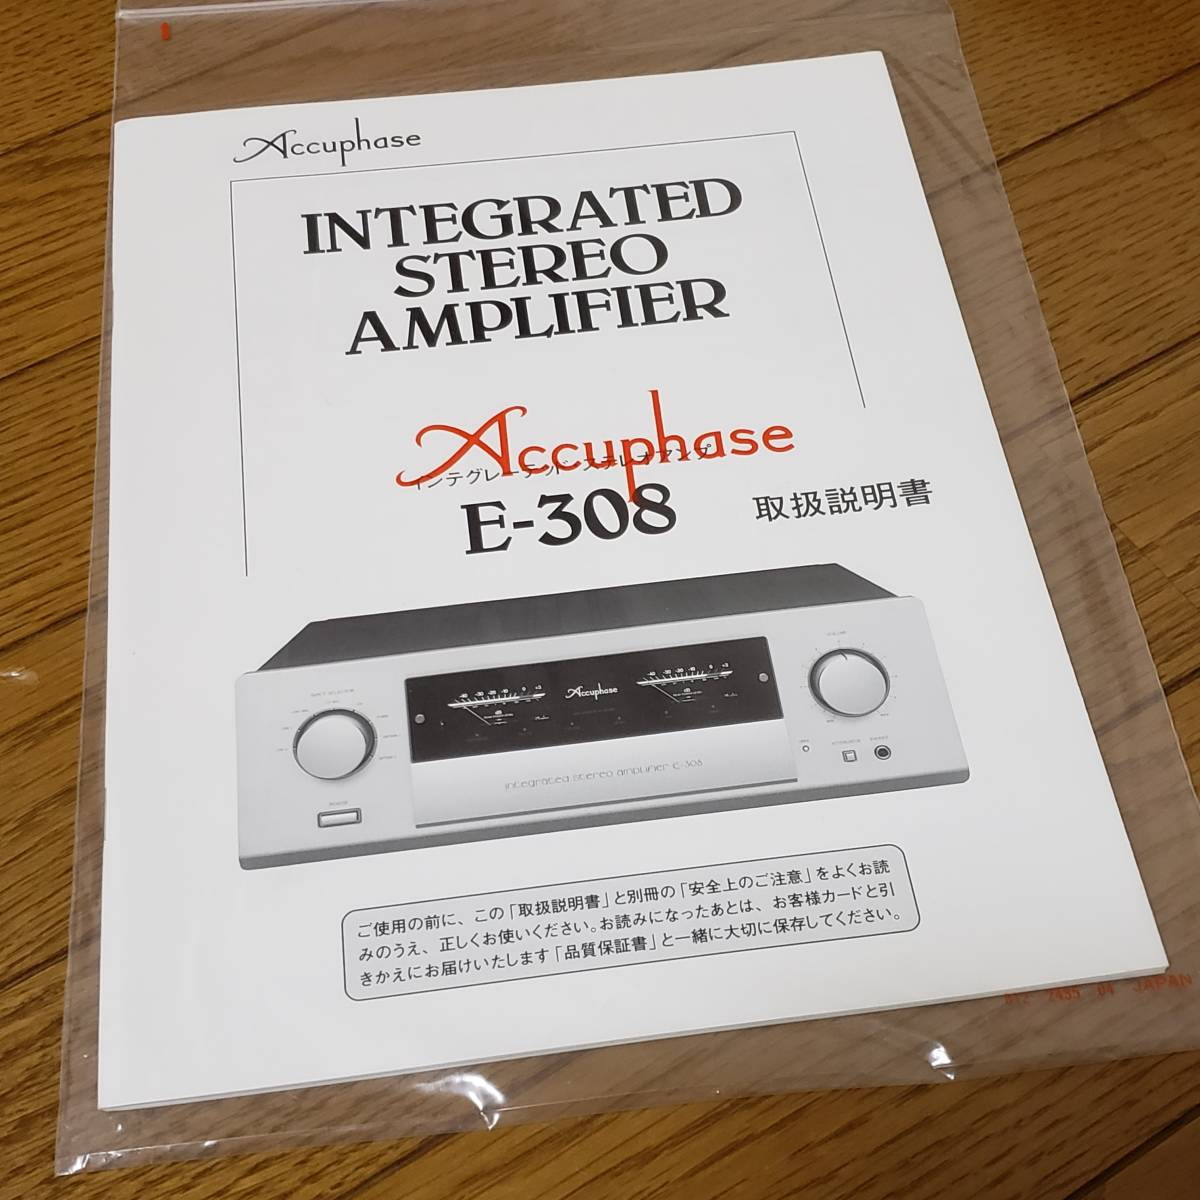 Accuphase アキュフェーズ E-308 インテグレ-テッドステレオアンプ 取扱説明書_画像1